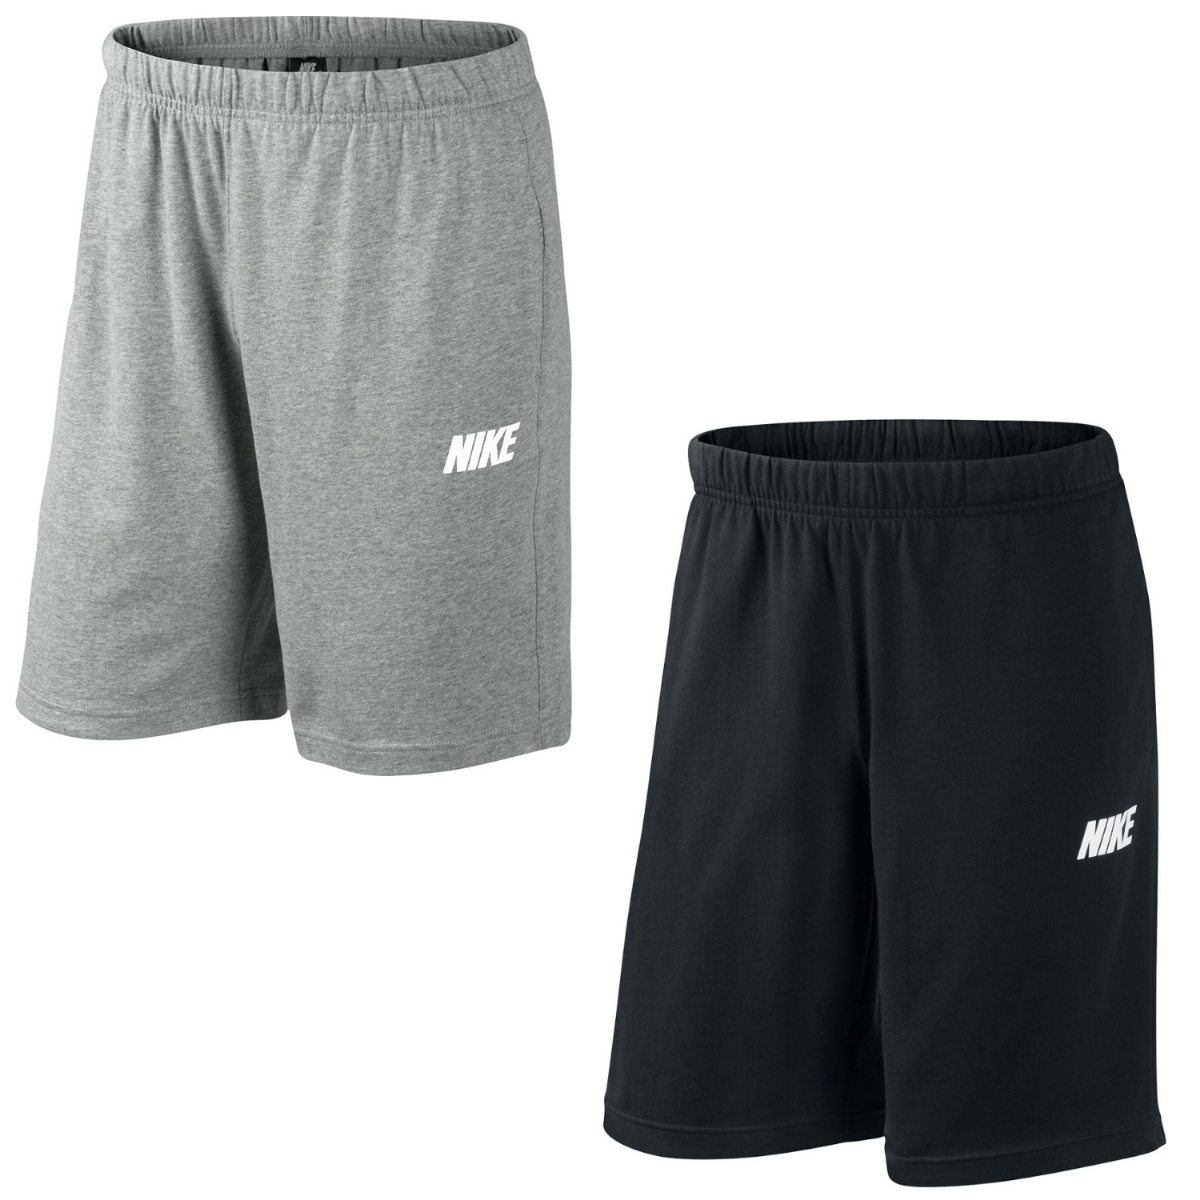 nike crusader shorts hose sporthose trainingshose kurz. Black Bedroom Furniture Sets. Home Design Ideas